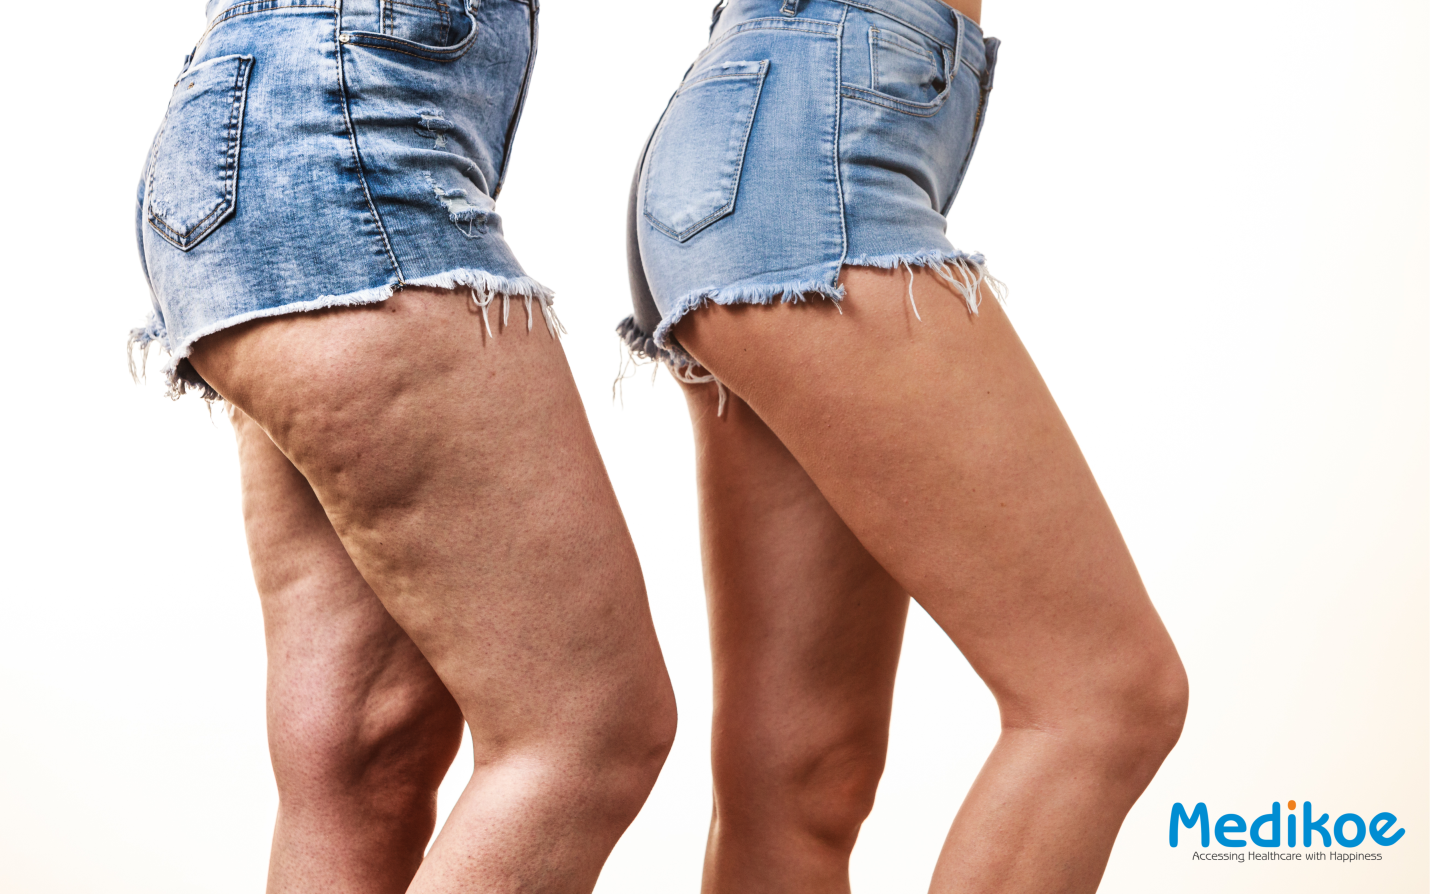 What is an anti-cellulite body wrap?